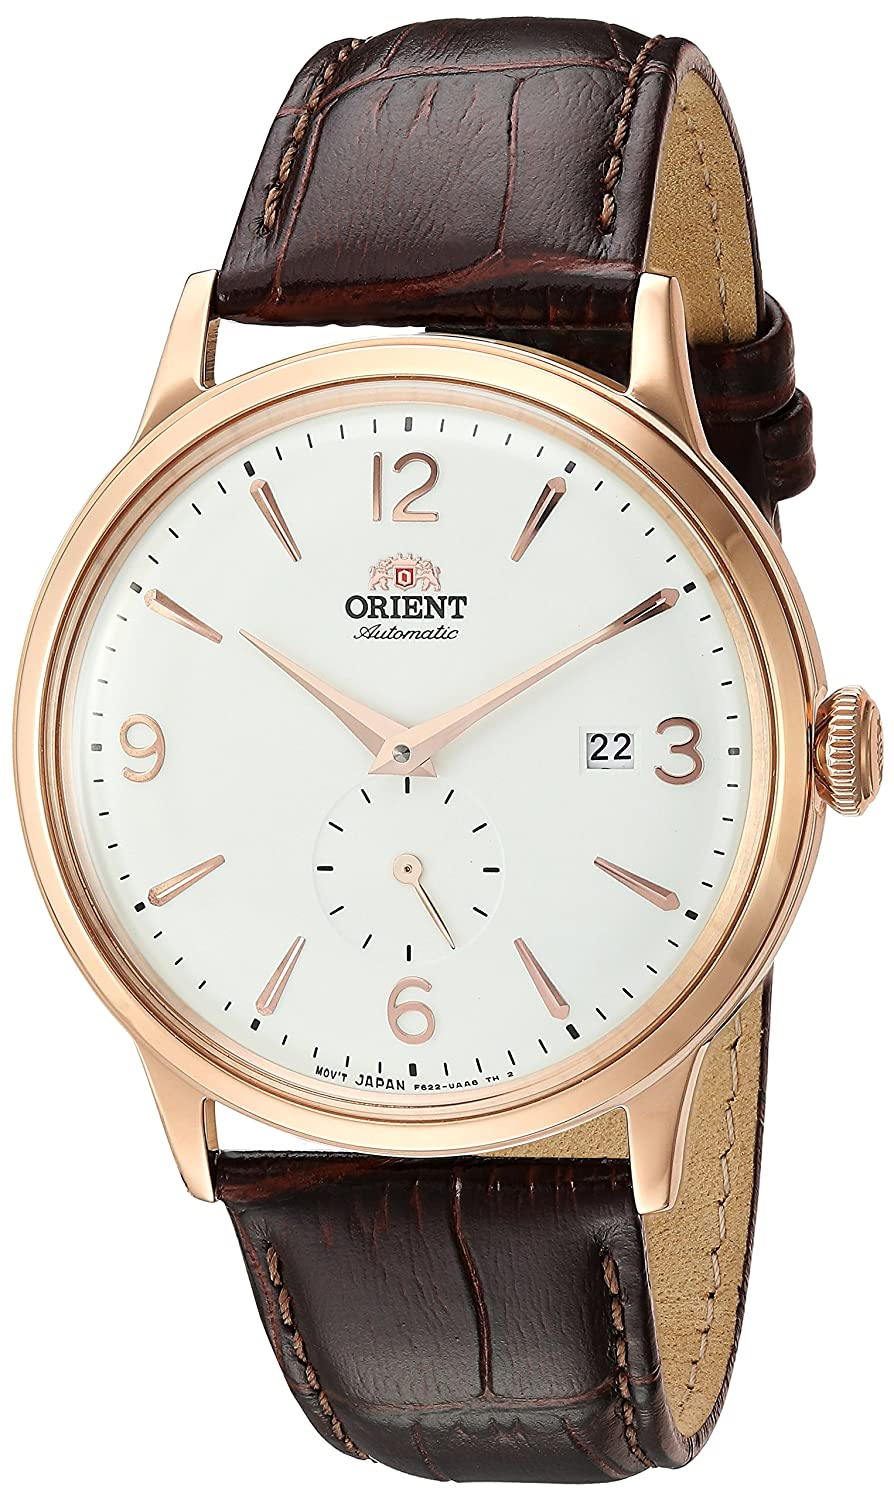 Orient Men 's ' Bambino Small Seconds ' Japanese AutomaticステンレススチールandレザーDress Watch, Color : Brown (Model : ra-ap0001s10 a) B07B45XJG7